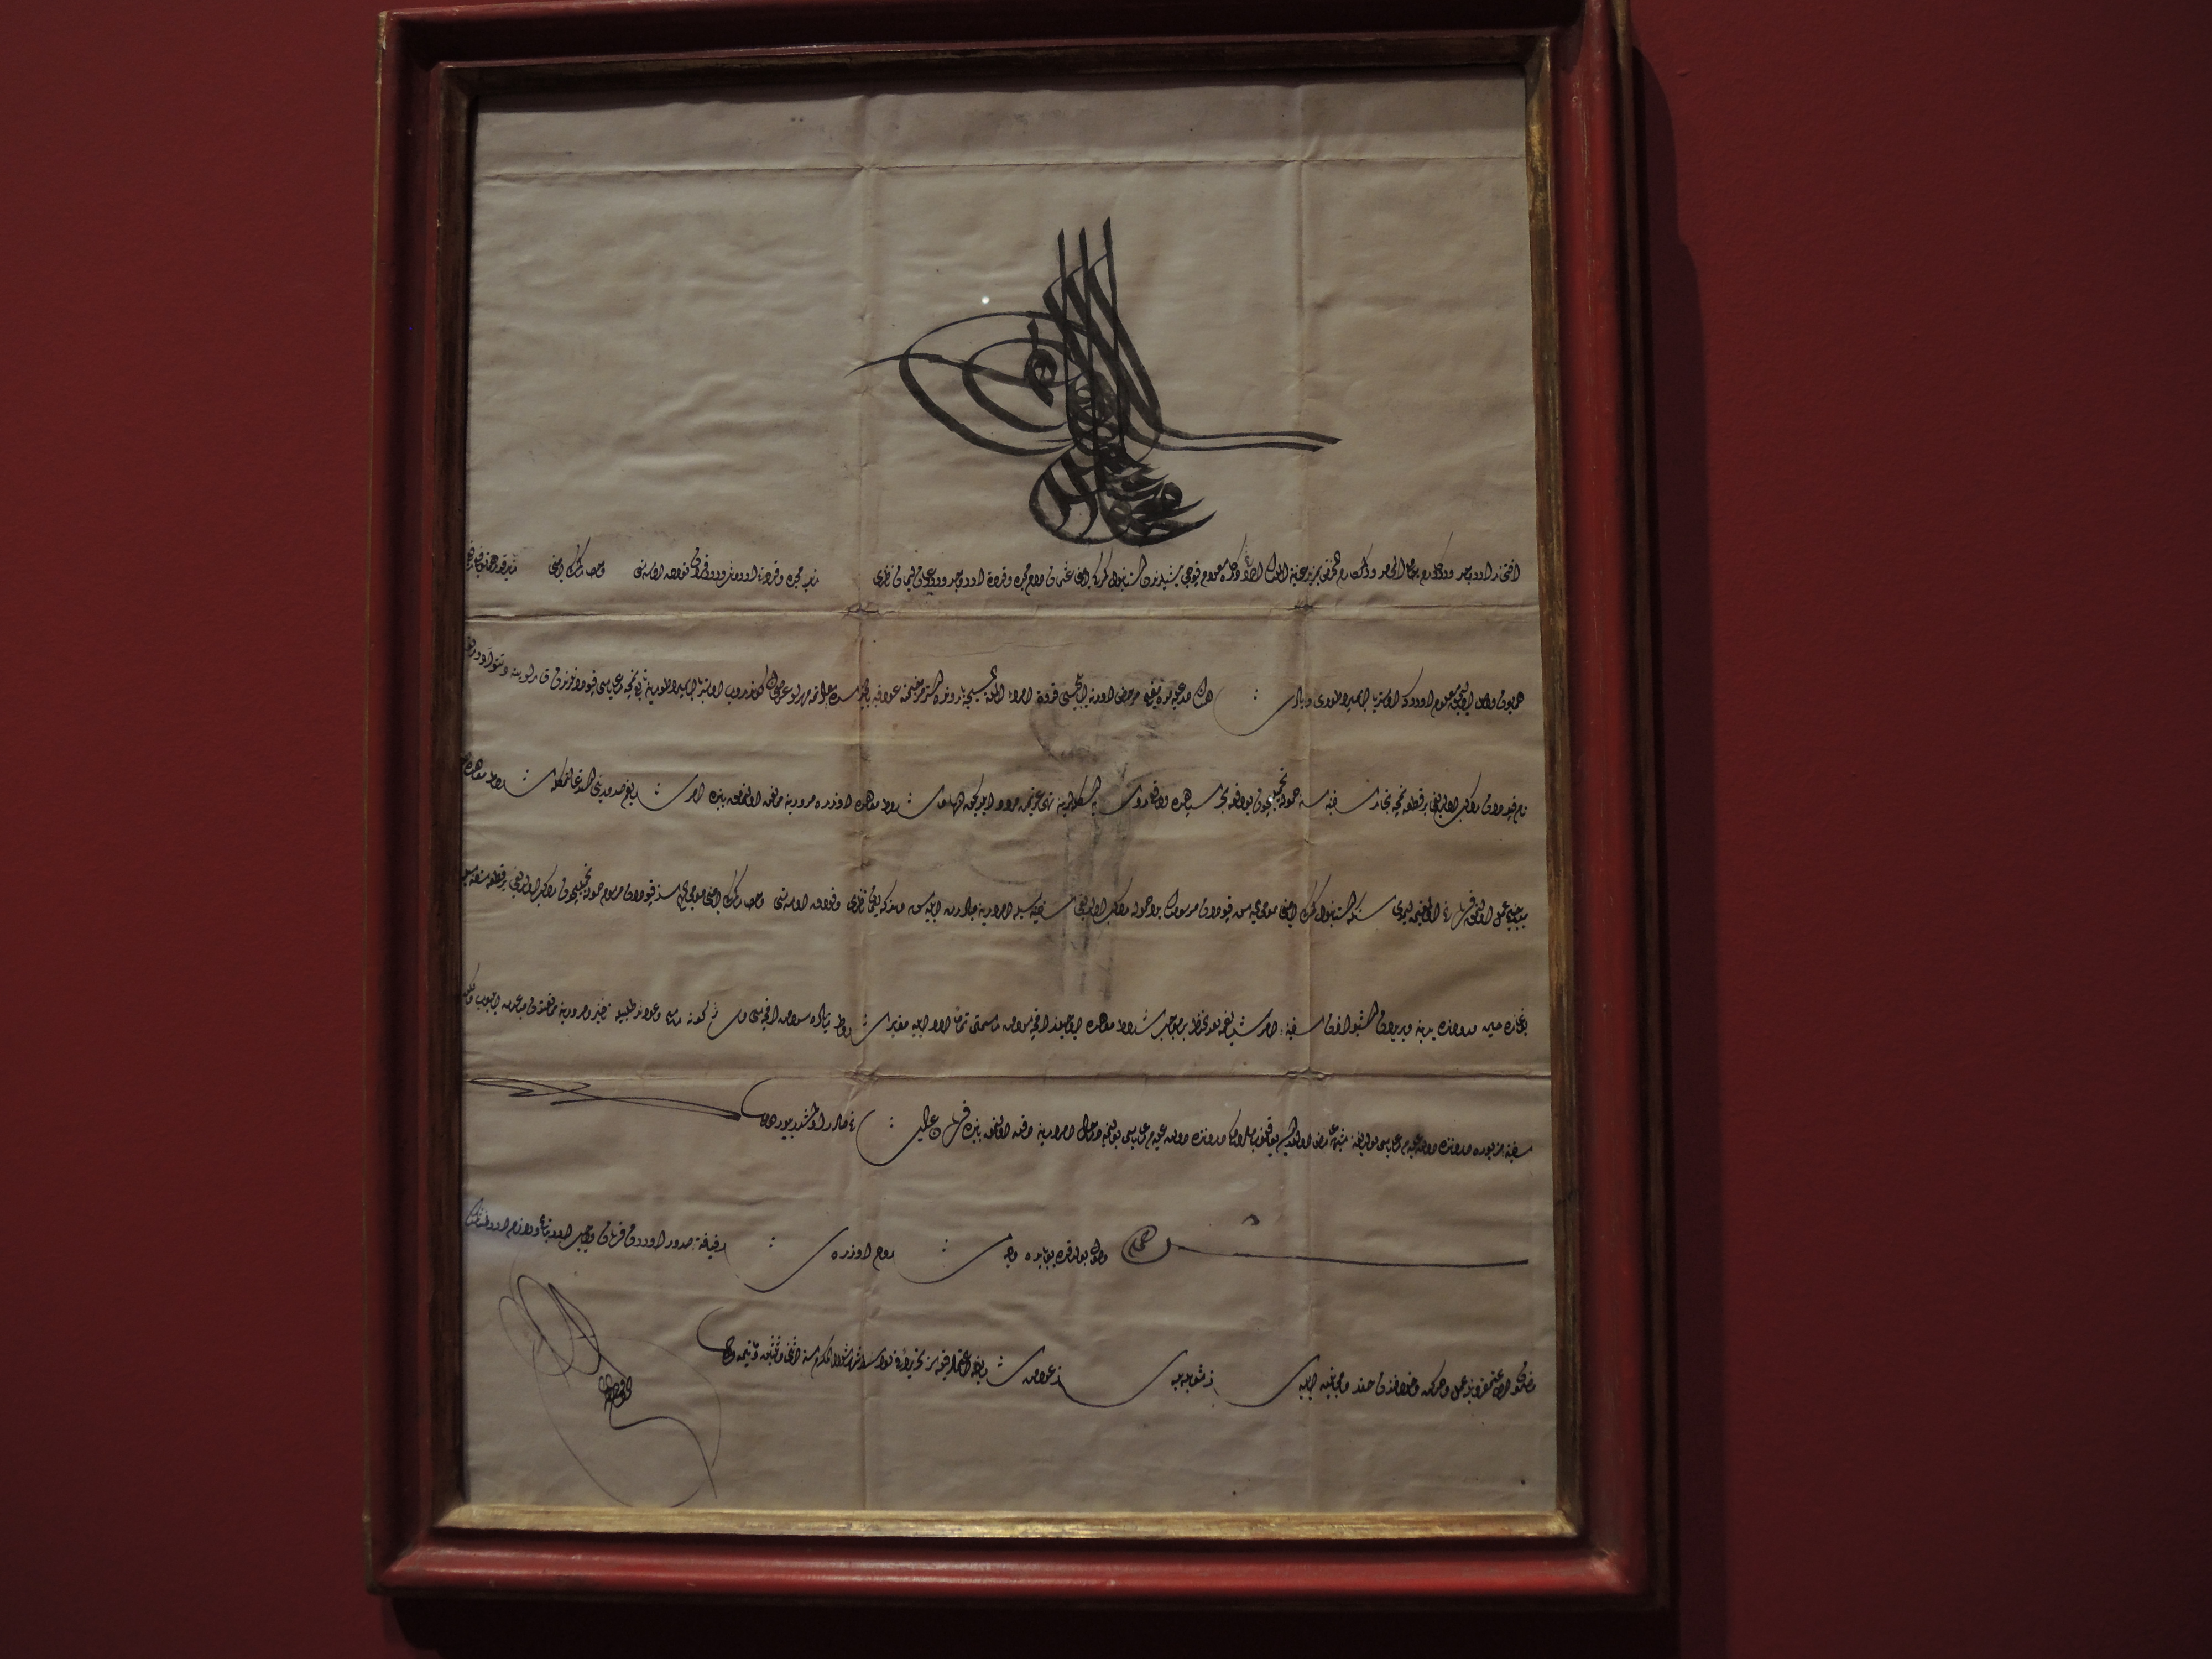 Pass released in 1817 by the Ottoman sultan for a ship owned by the Venetian Jewish shipowner Giuseppe Treves